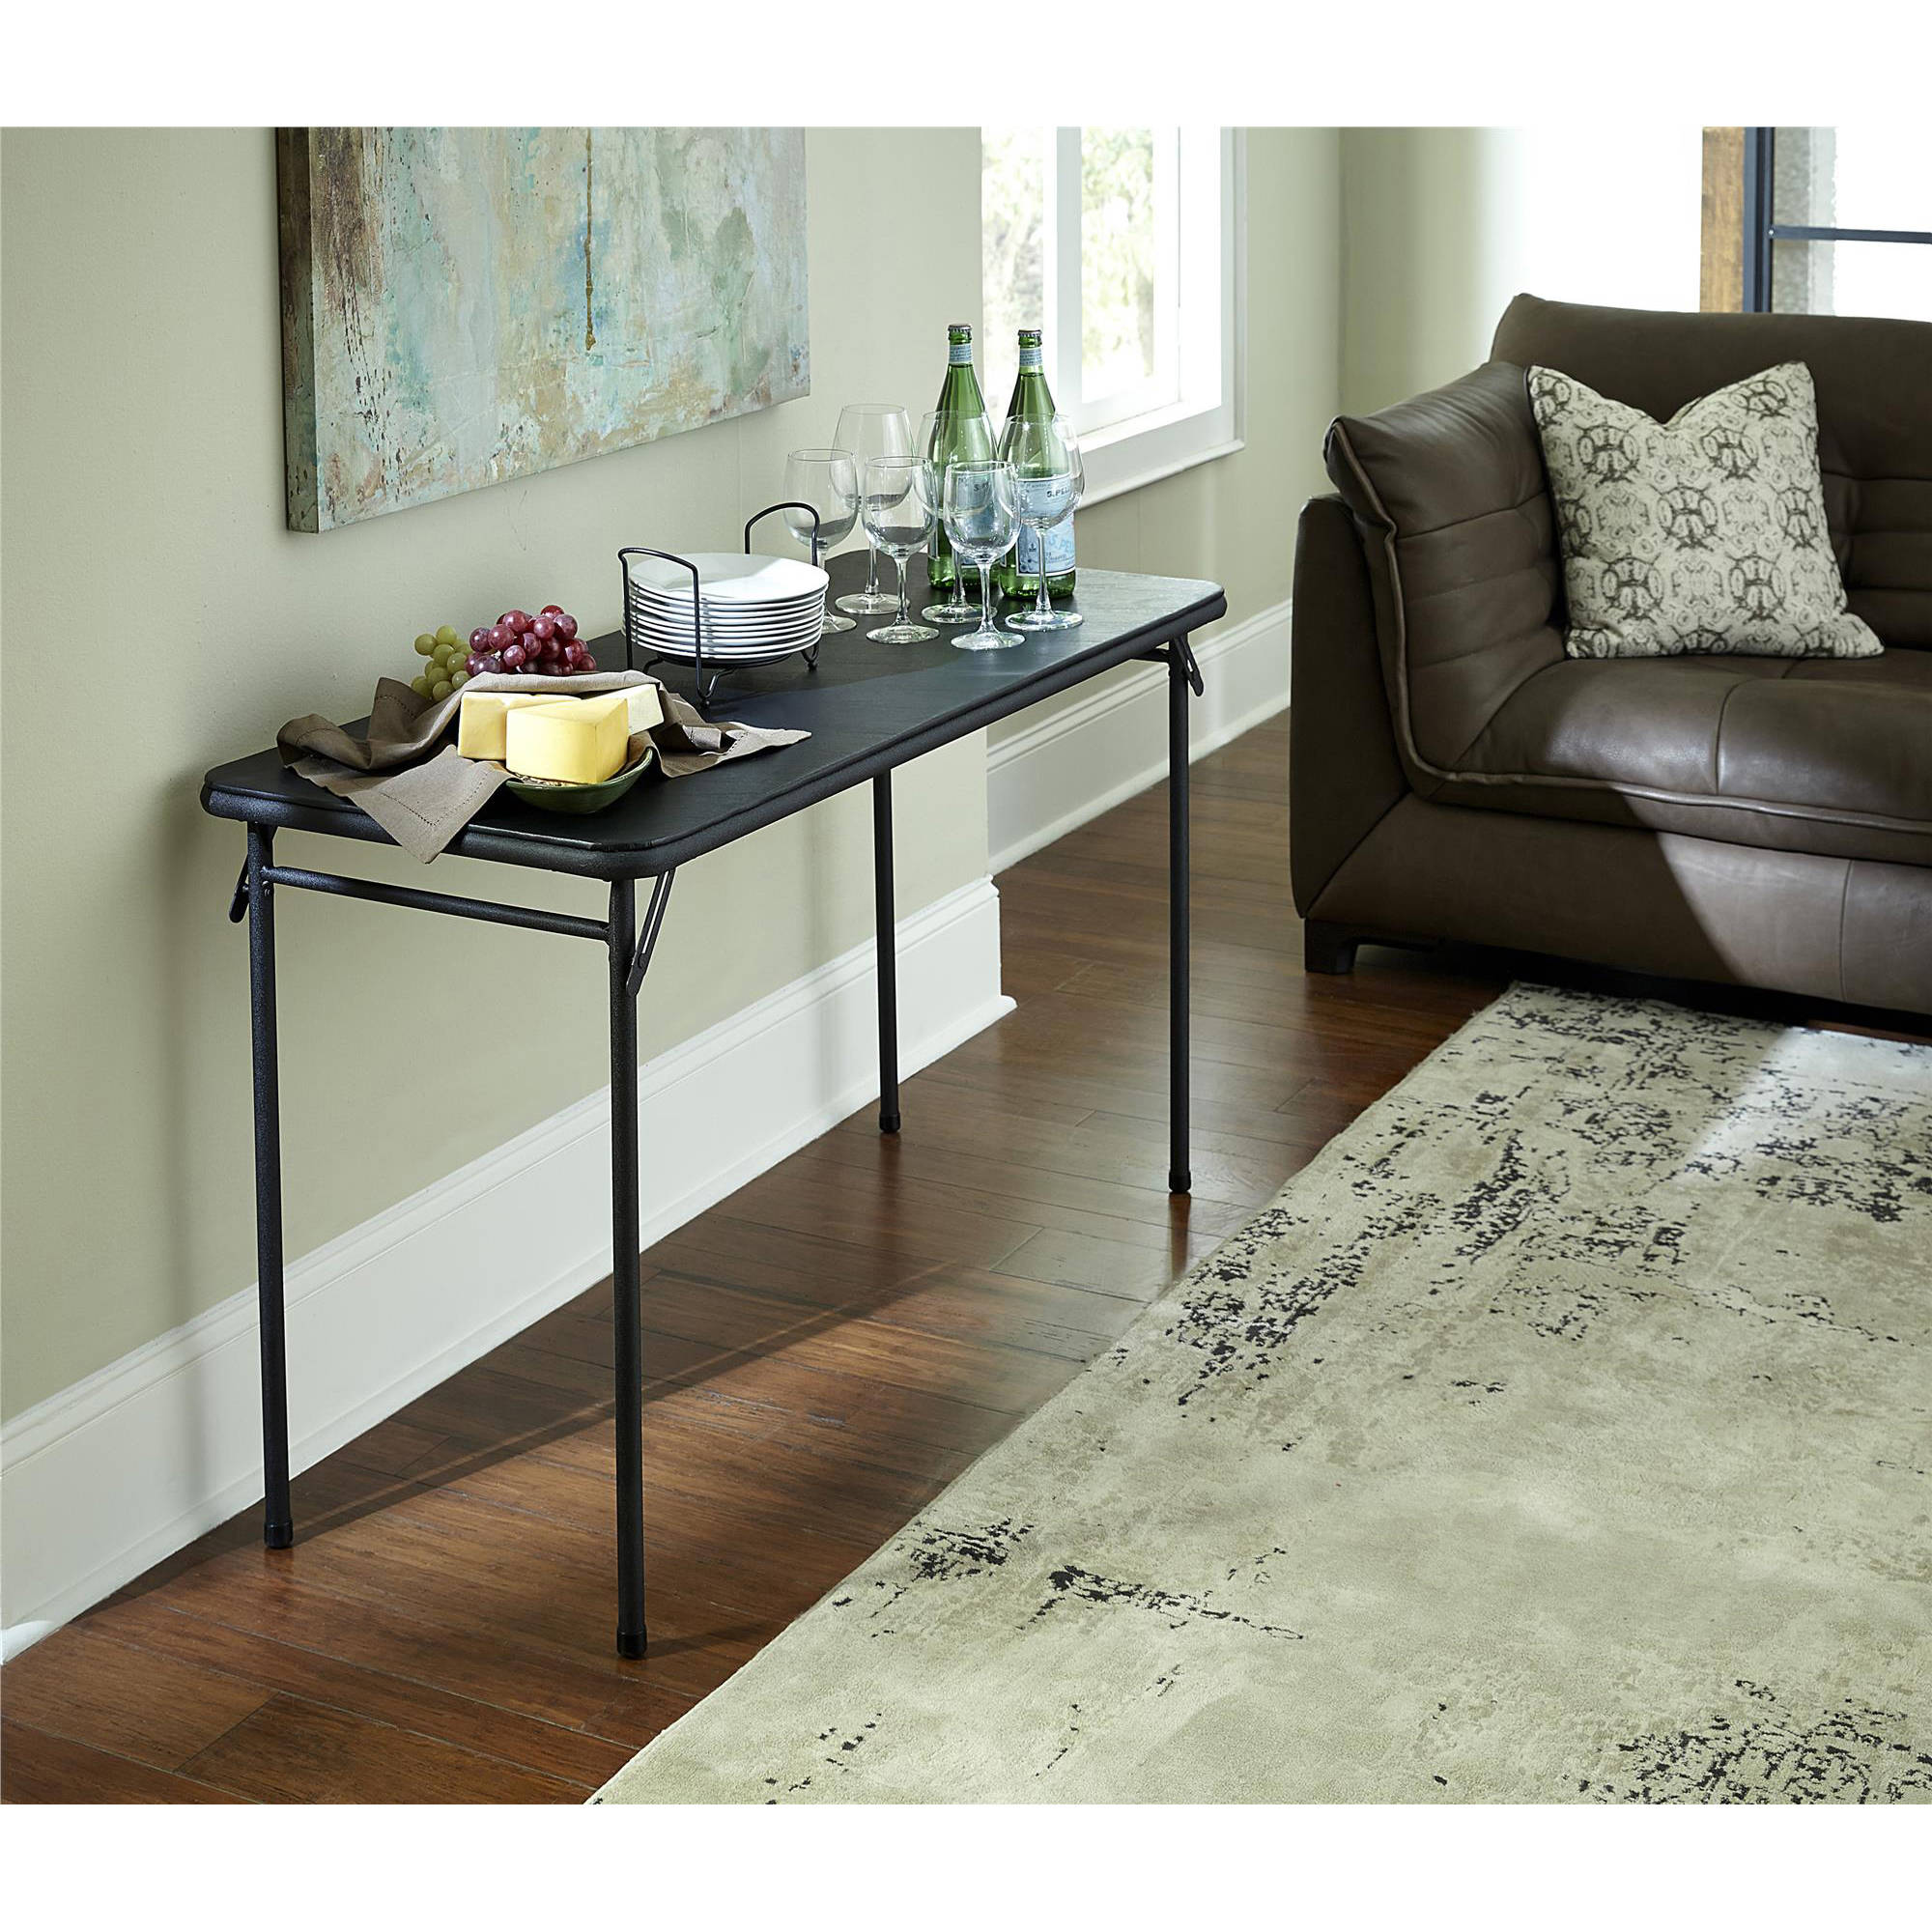 "Cosco 20"" x 48"" Vinyl Top Folding Table, Black"